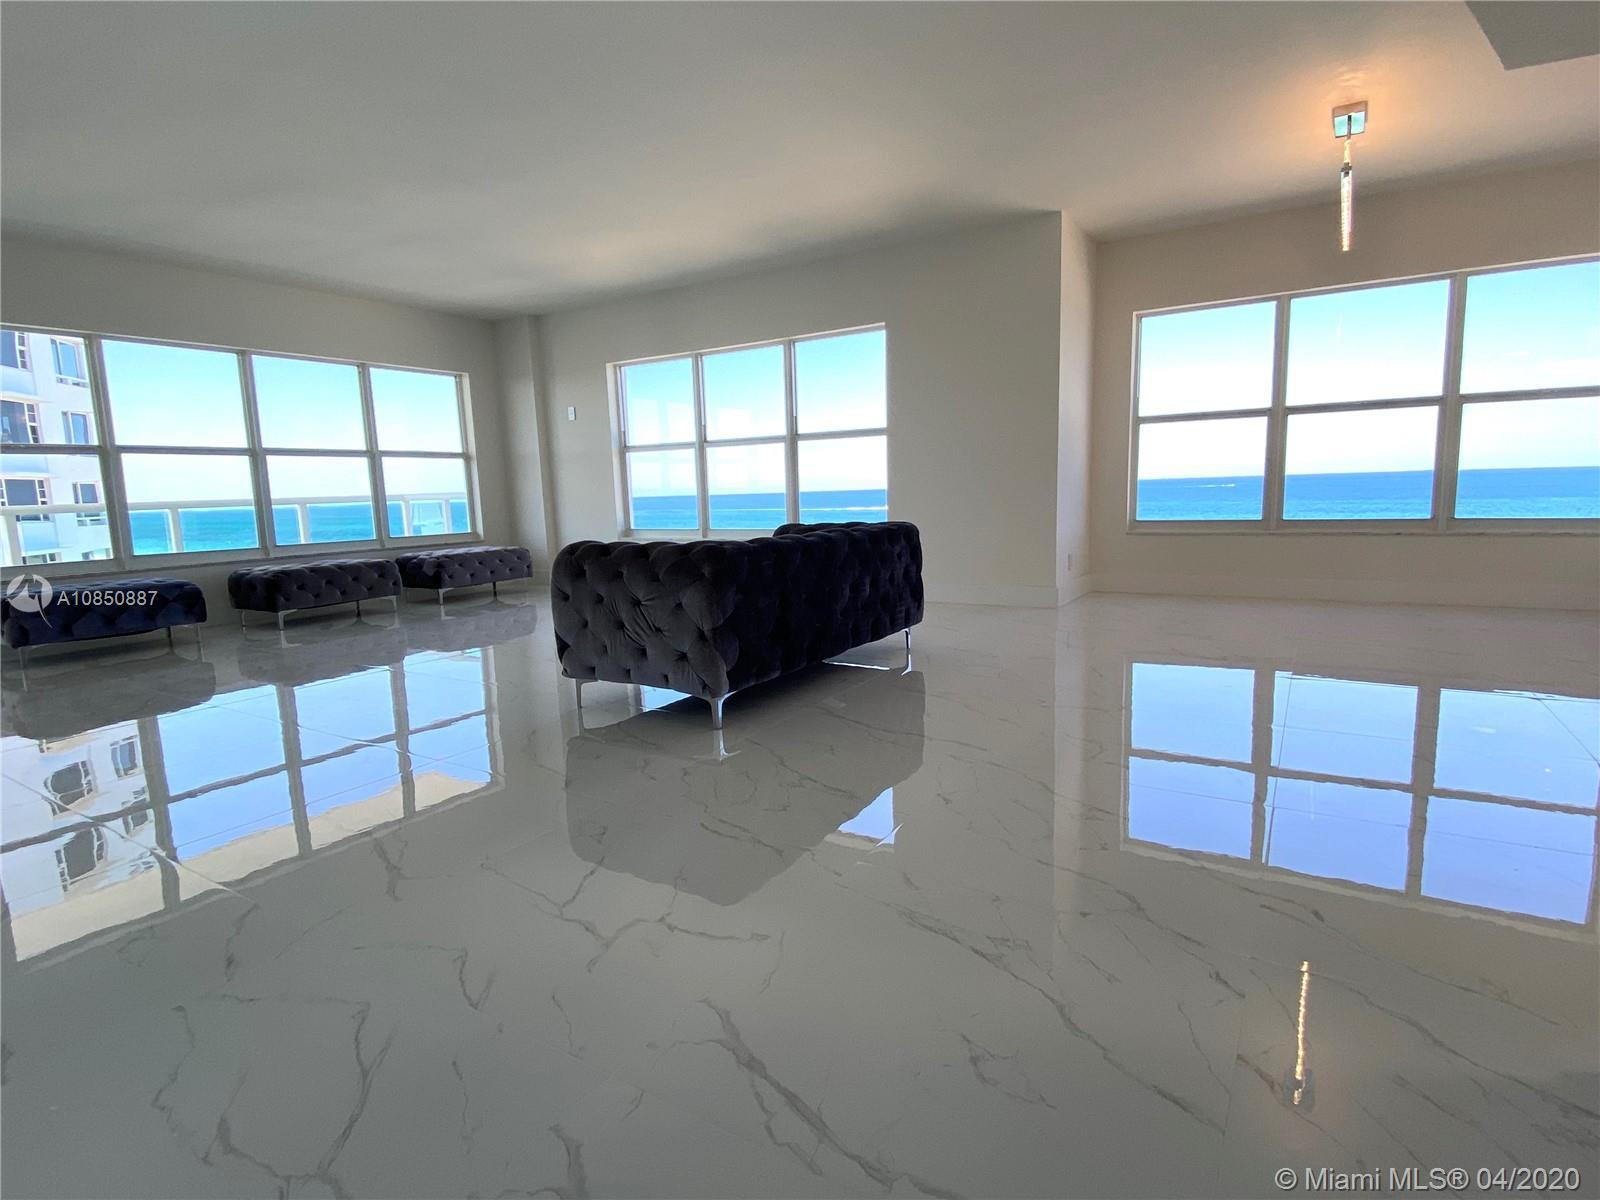 A Must See!!! One of A Kind. PANORAMIC stunning FRONT ocean views from this 9th floor 3 bedroom, 2.5